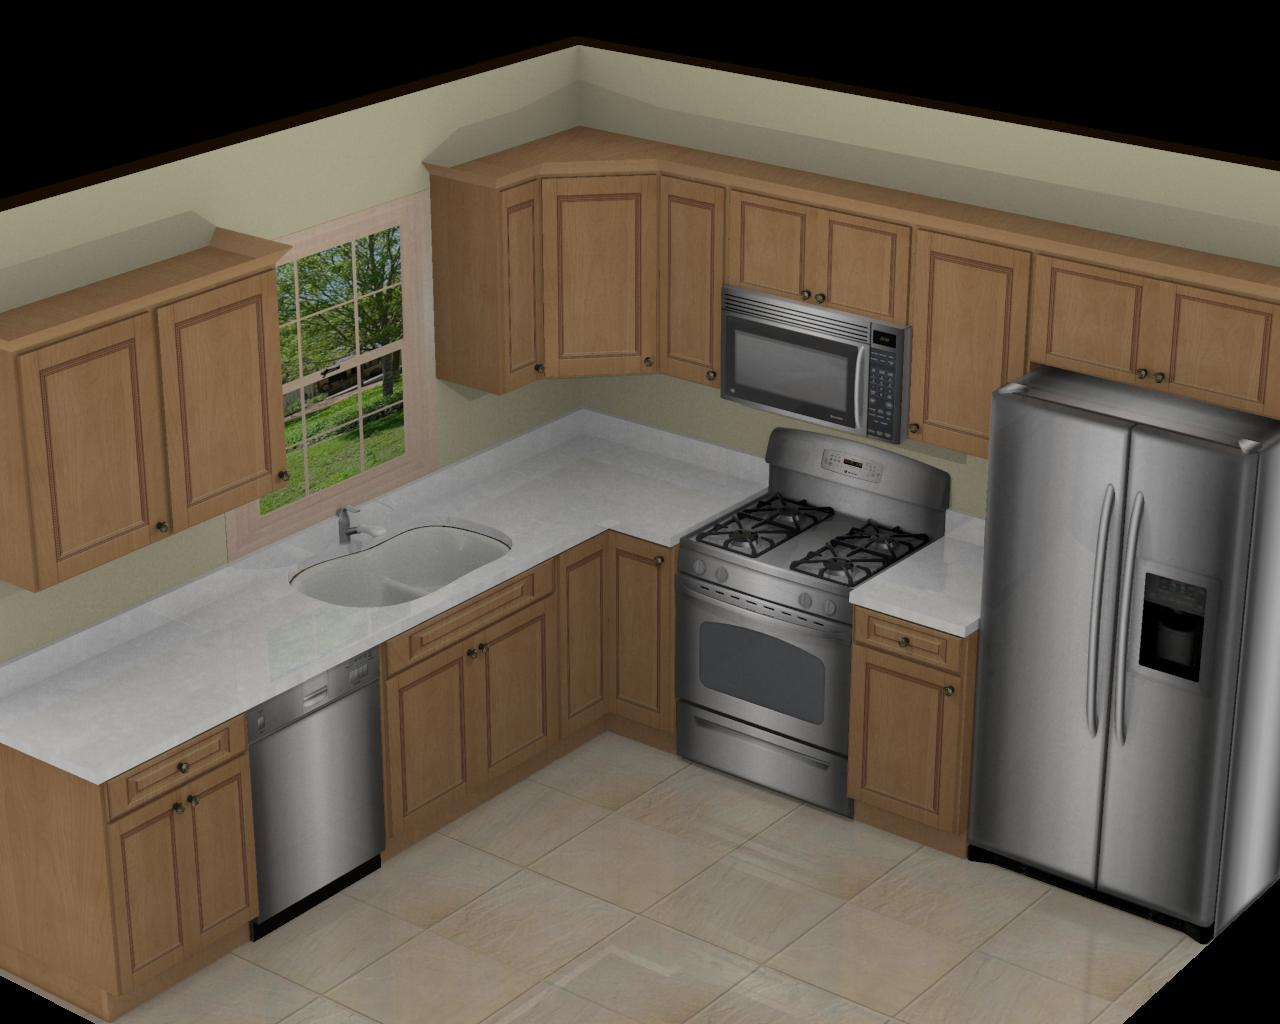 Foundation dezin decor 3d kitchen model design for Where to get a kitchen from